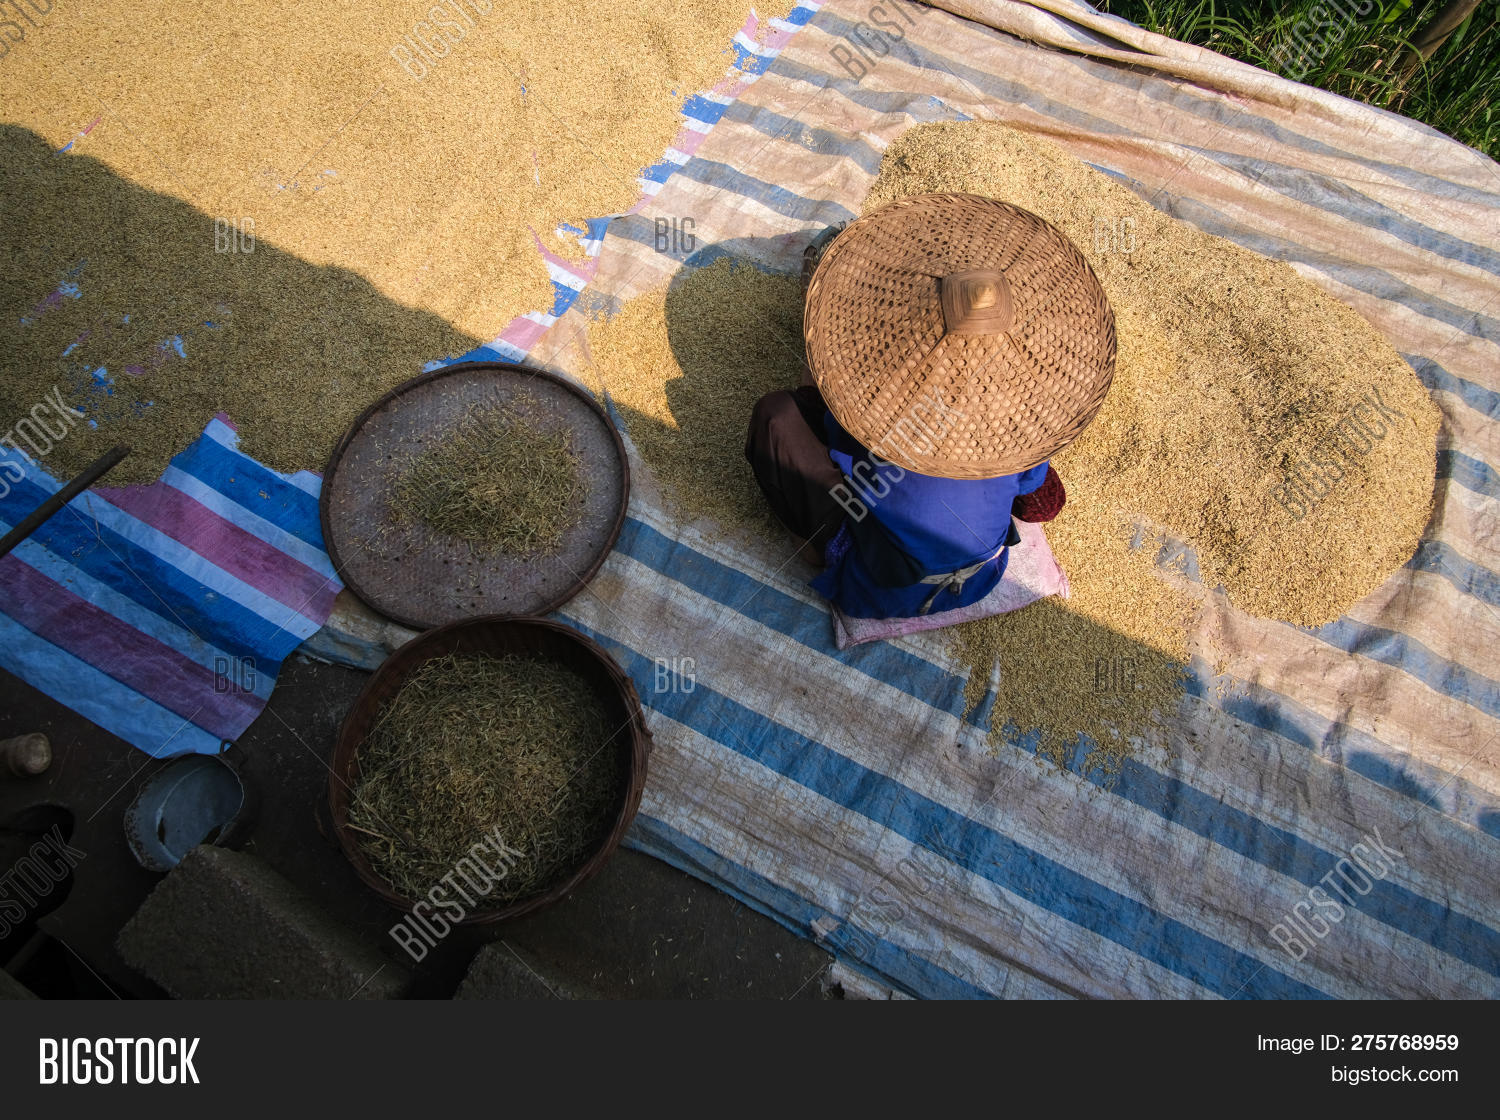 agricultural,agriculture,asia,asian,background,bamboo,classic,clean,countryside,culture,dry,farm,farmer,female,field,food,grain,grinded,hands,harvest,harvesting,hat,indonesia,ingredient,natural,nature,organic,outdoor,paddy,pattern,people,plant,plantation,rice,rural,shake,sieve,sift,sifting,sit,traditional,vietnam,village,woman,wood,work,worker,yellow